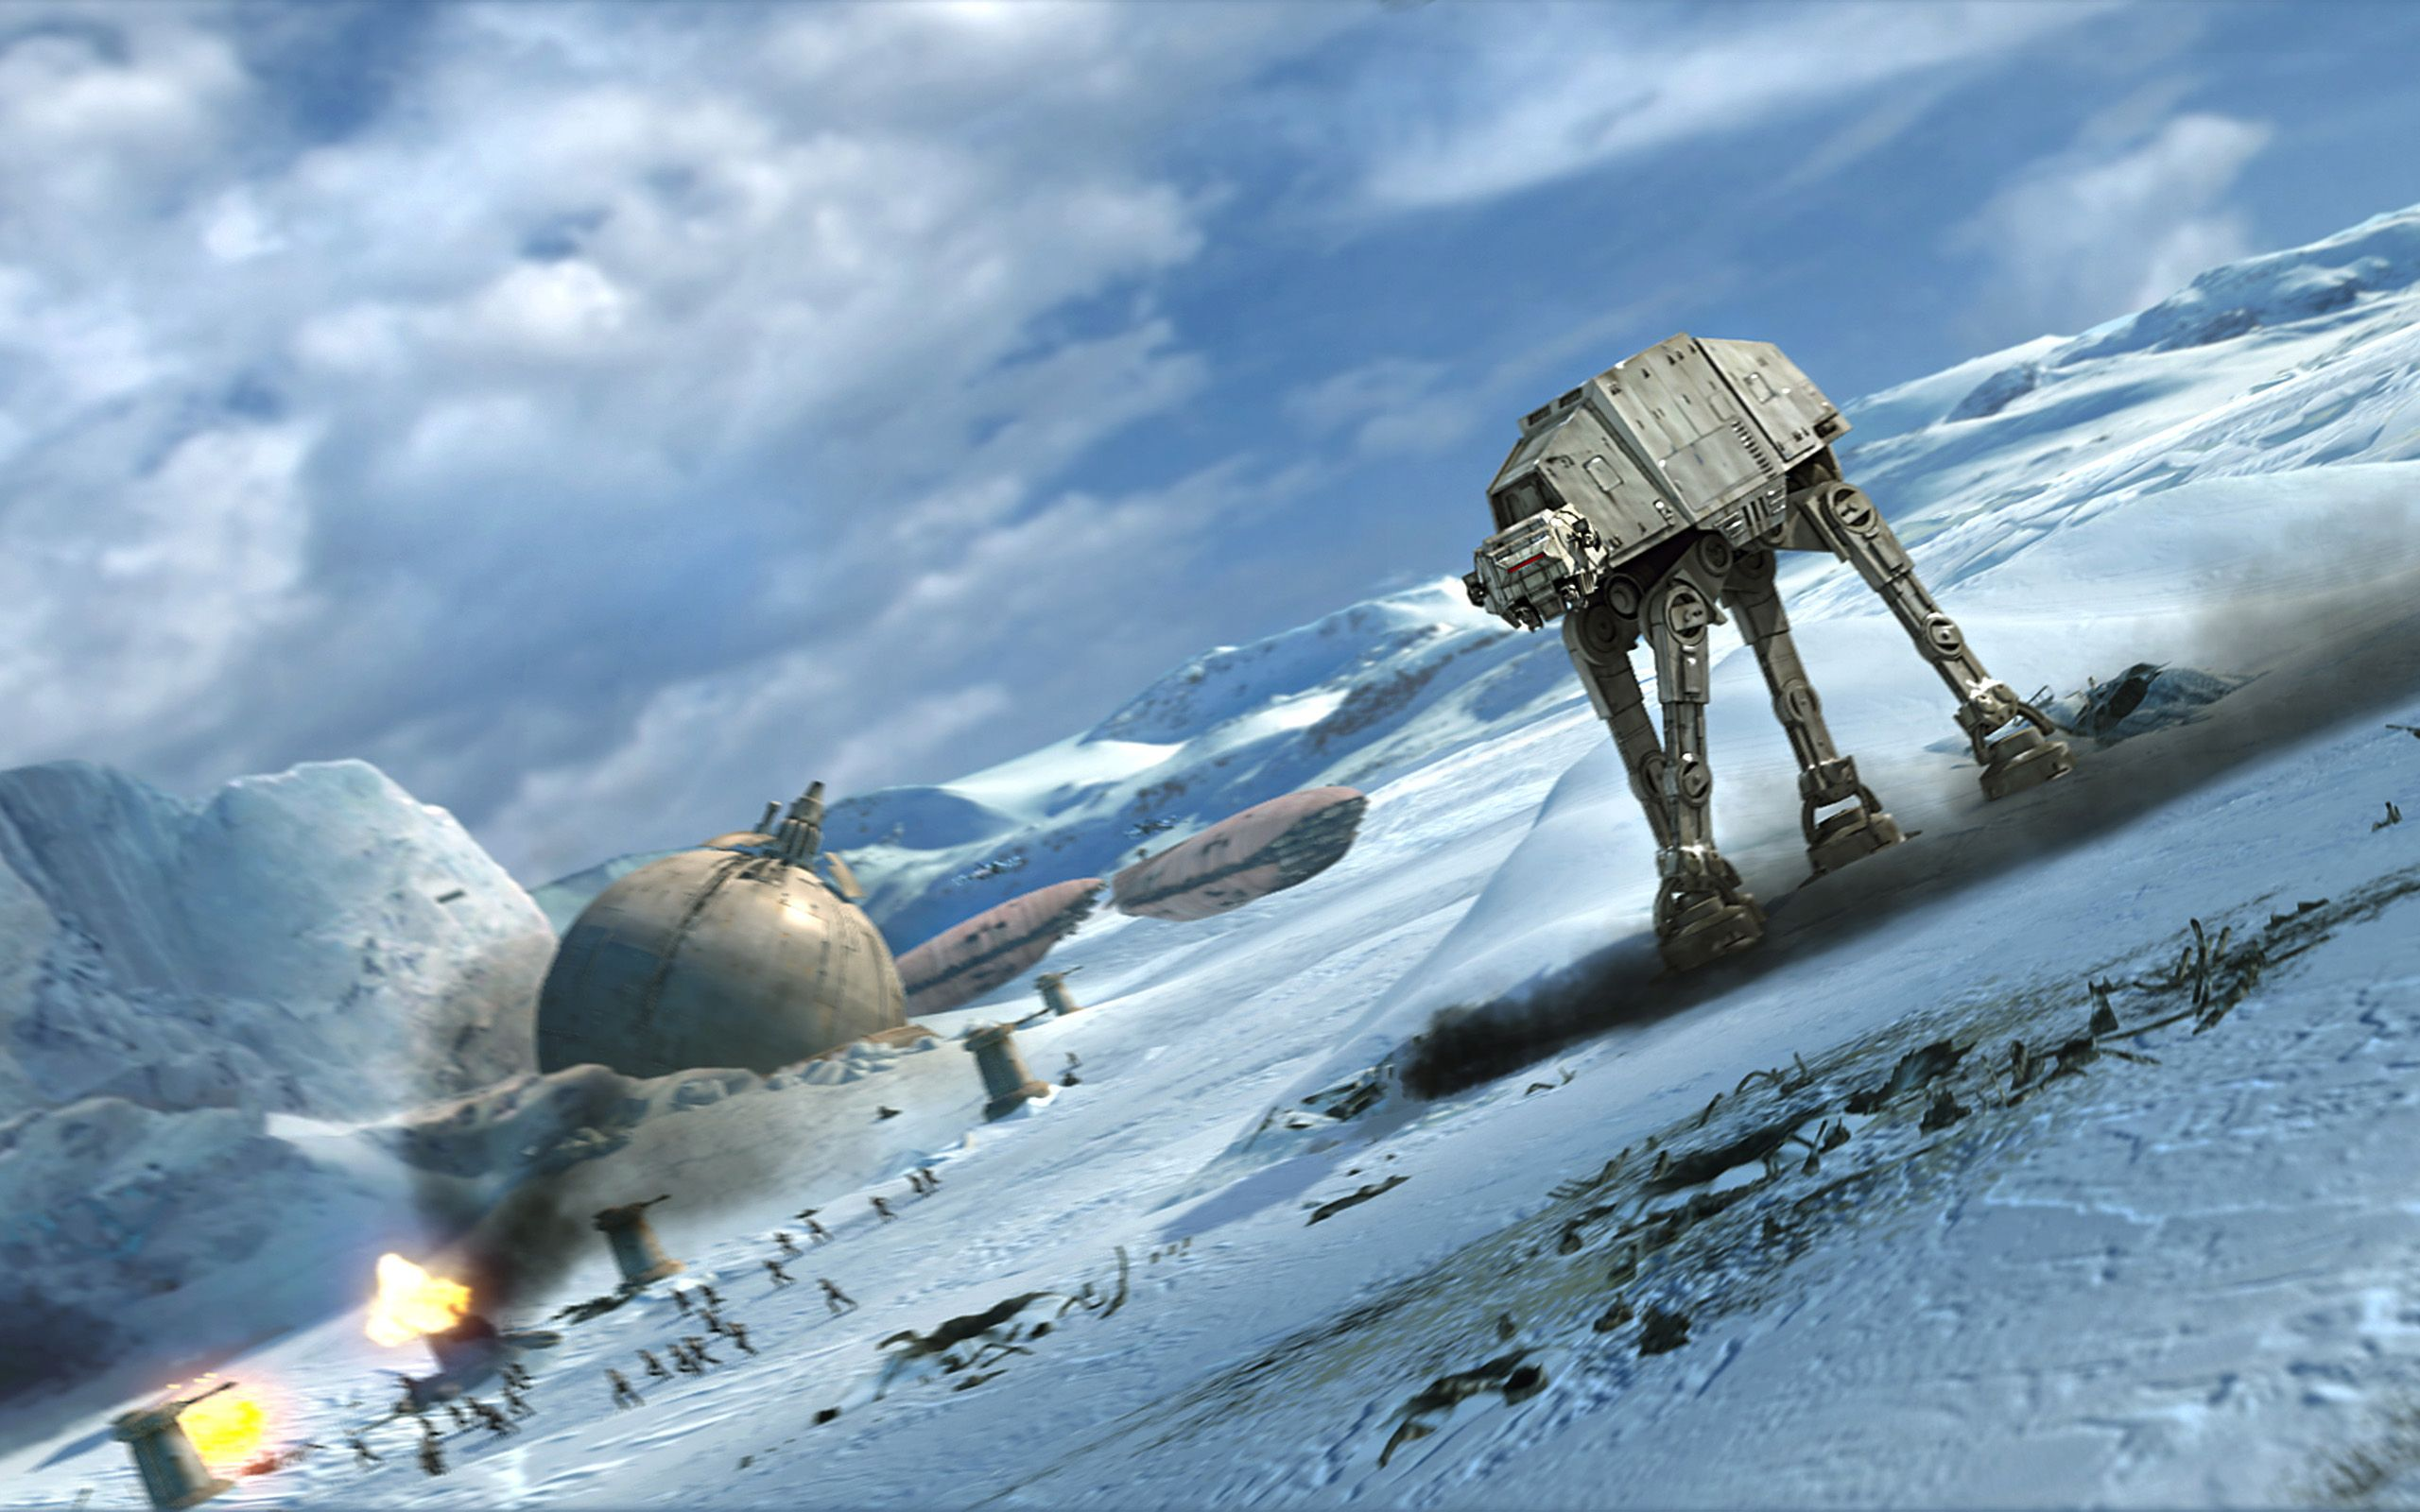 Star Wars Computer Wallpapers Desktop Backgrounds 2560x1600 Id 215044 Star Wars Wallpaper Star Wars Hoth Star Wars